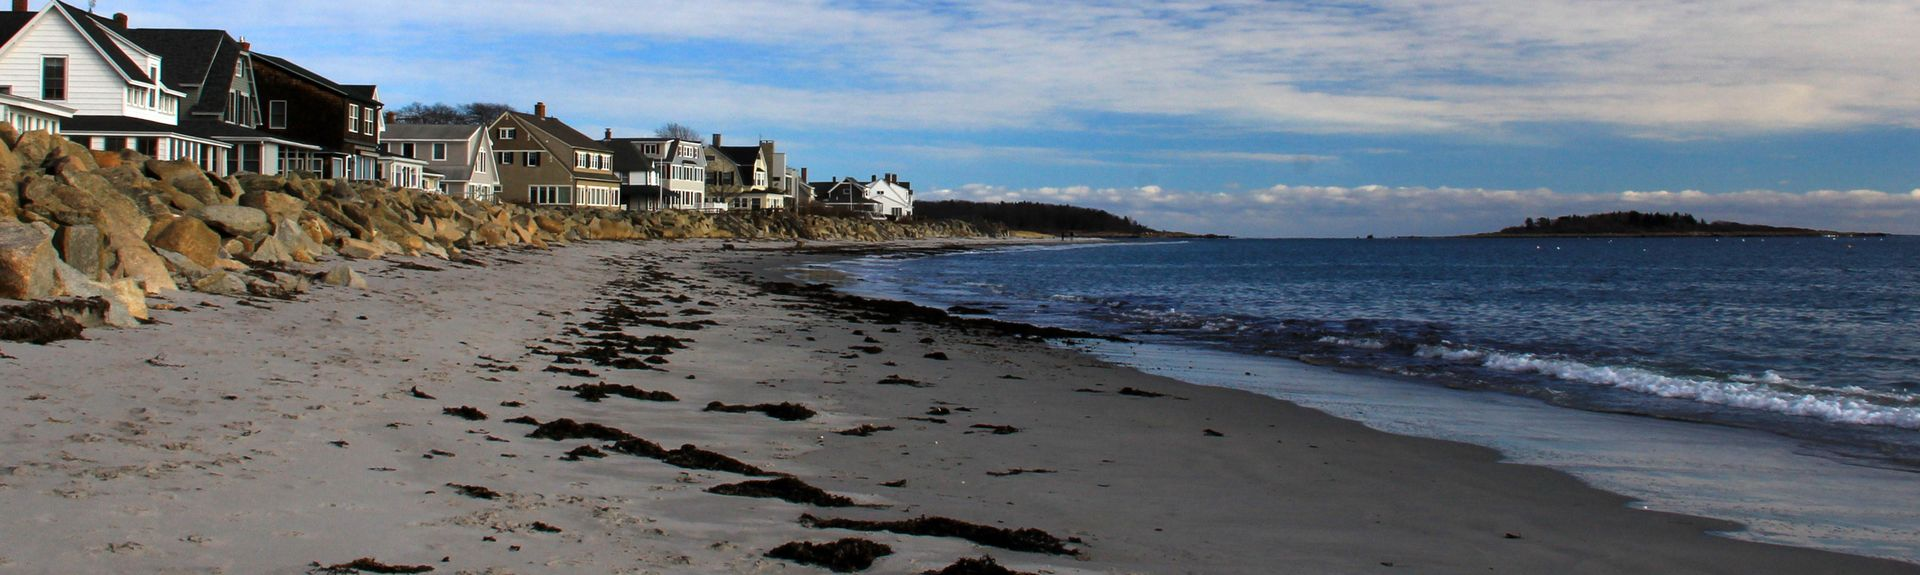 Goose Rocks Beach, Kennebunkport, Maine, Estados Unidos